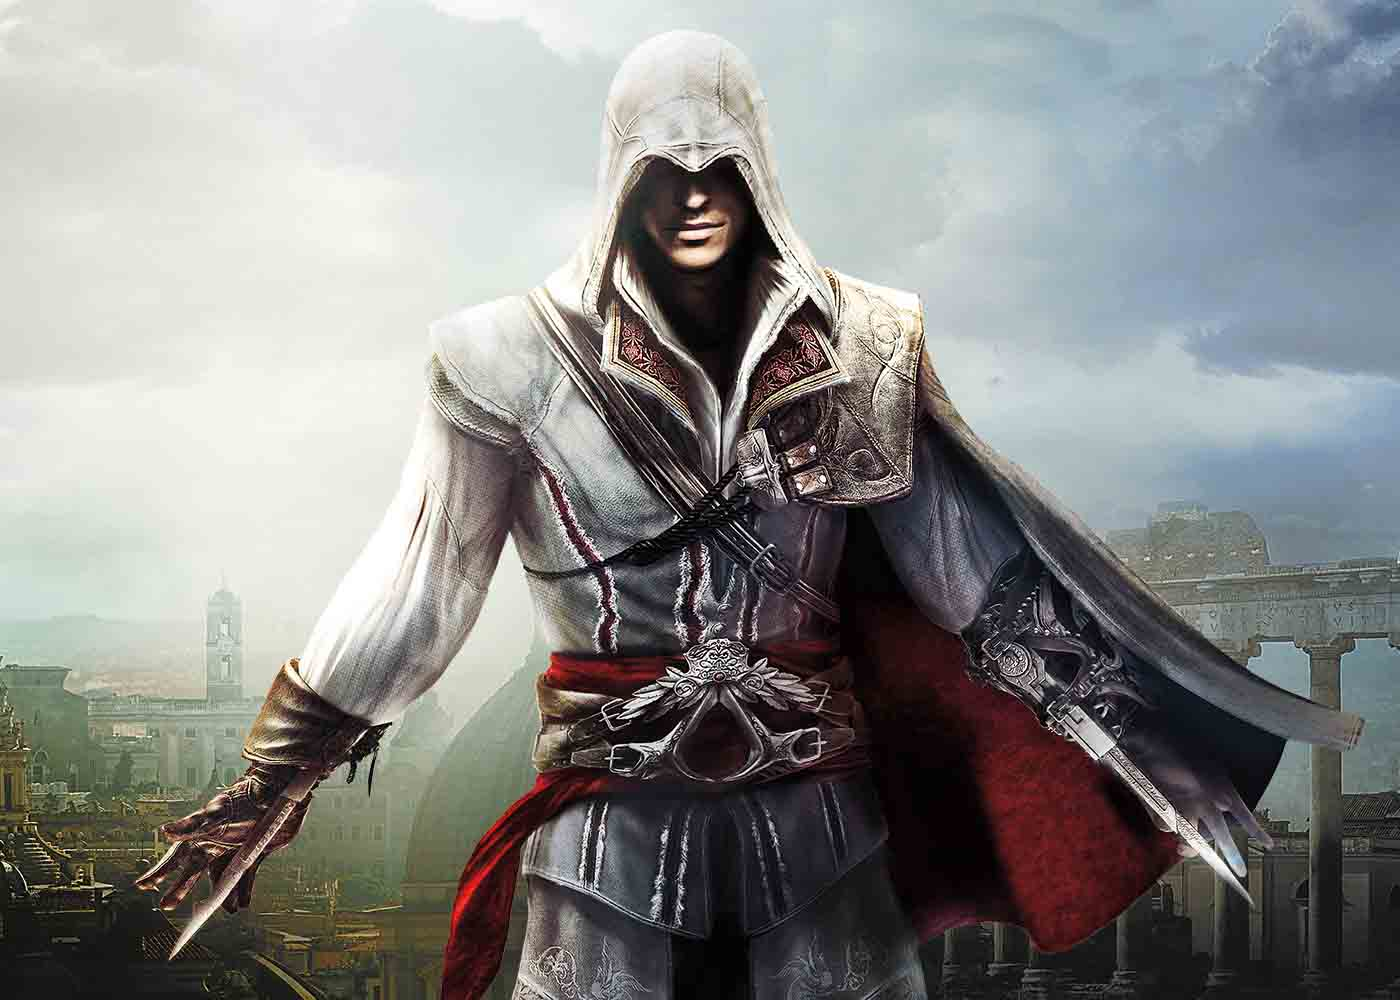 assassin's creed, ubisoft, adi shankar